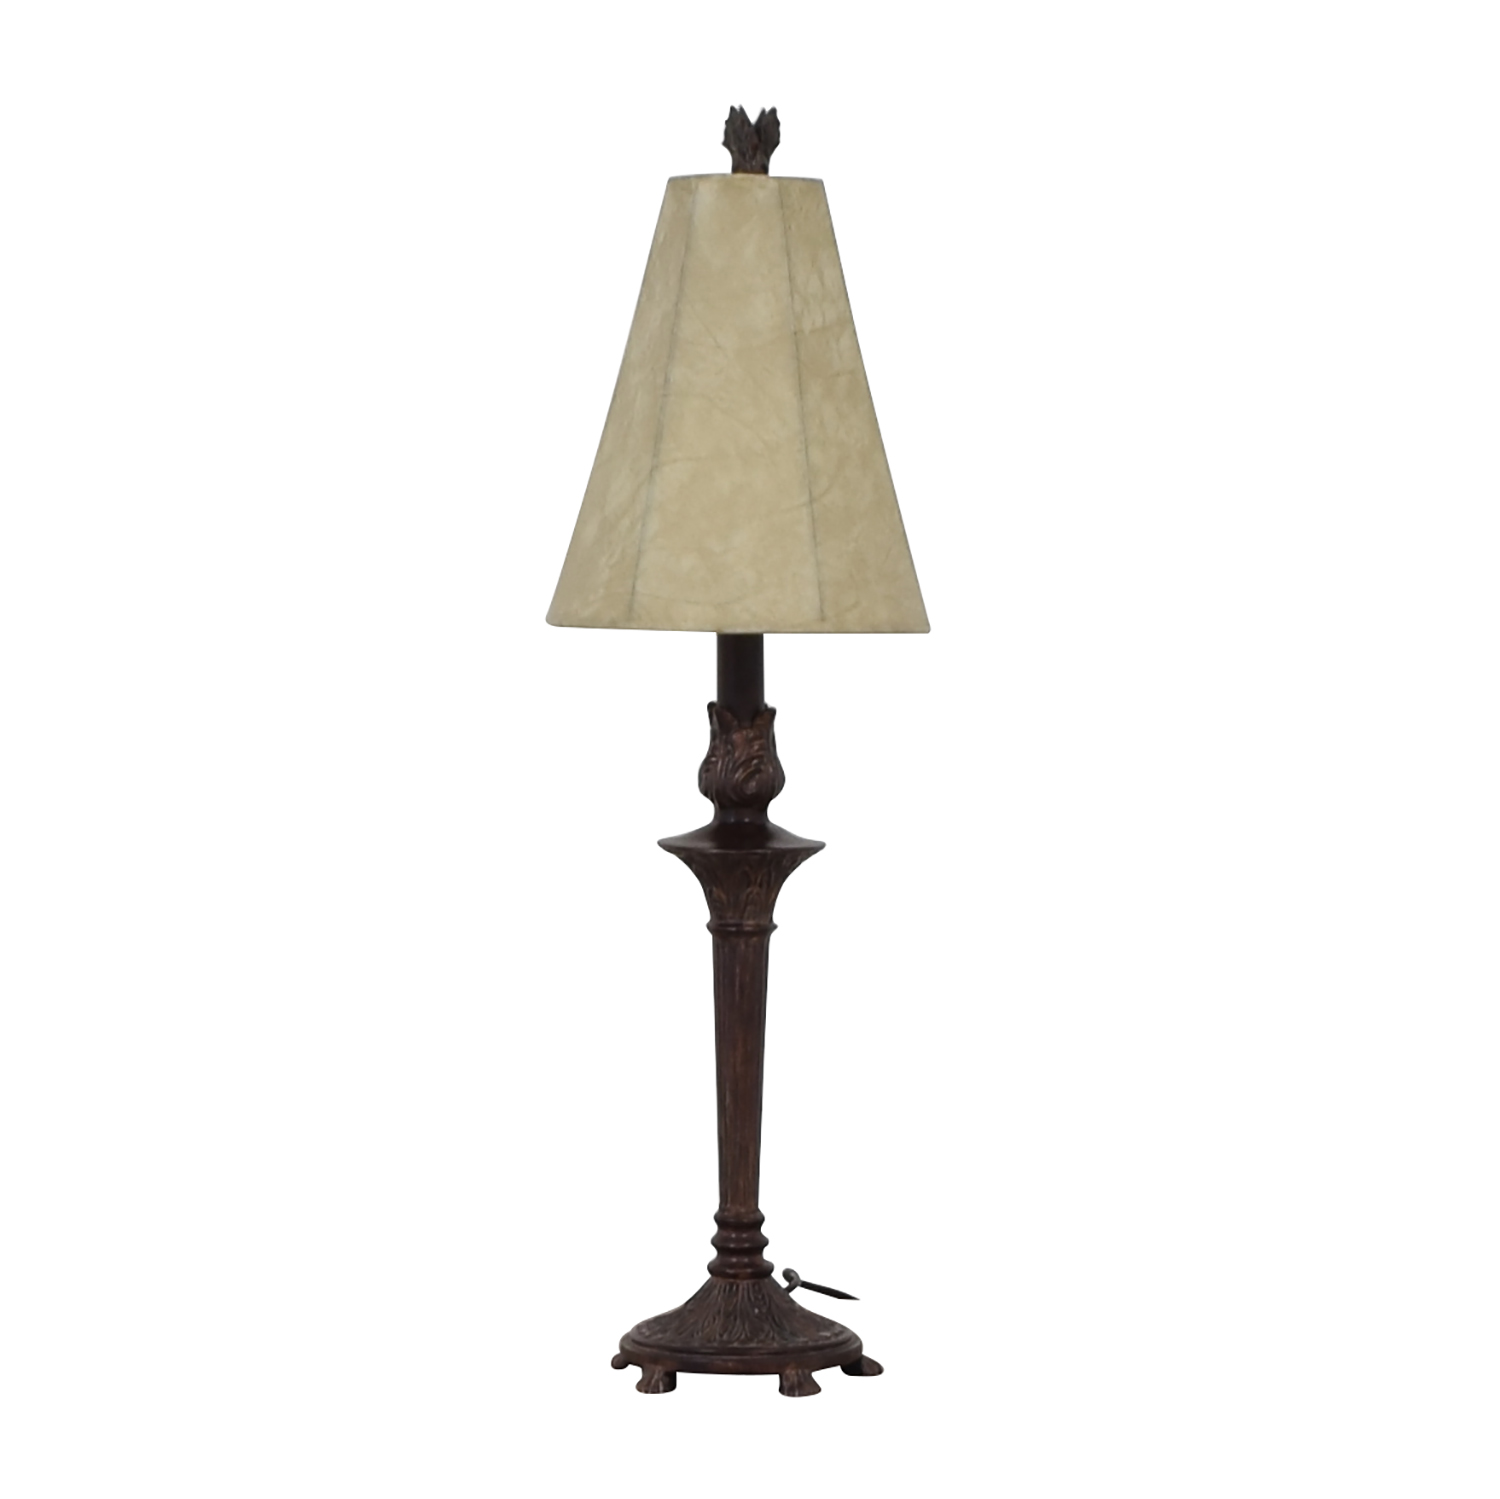 Bed Bath & Beyond Bed Bath & Beyond Brown Table Lamp